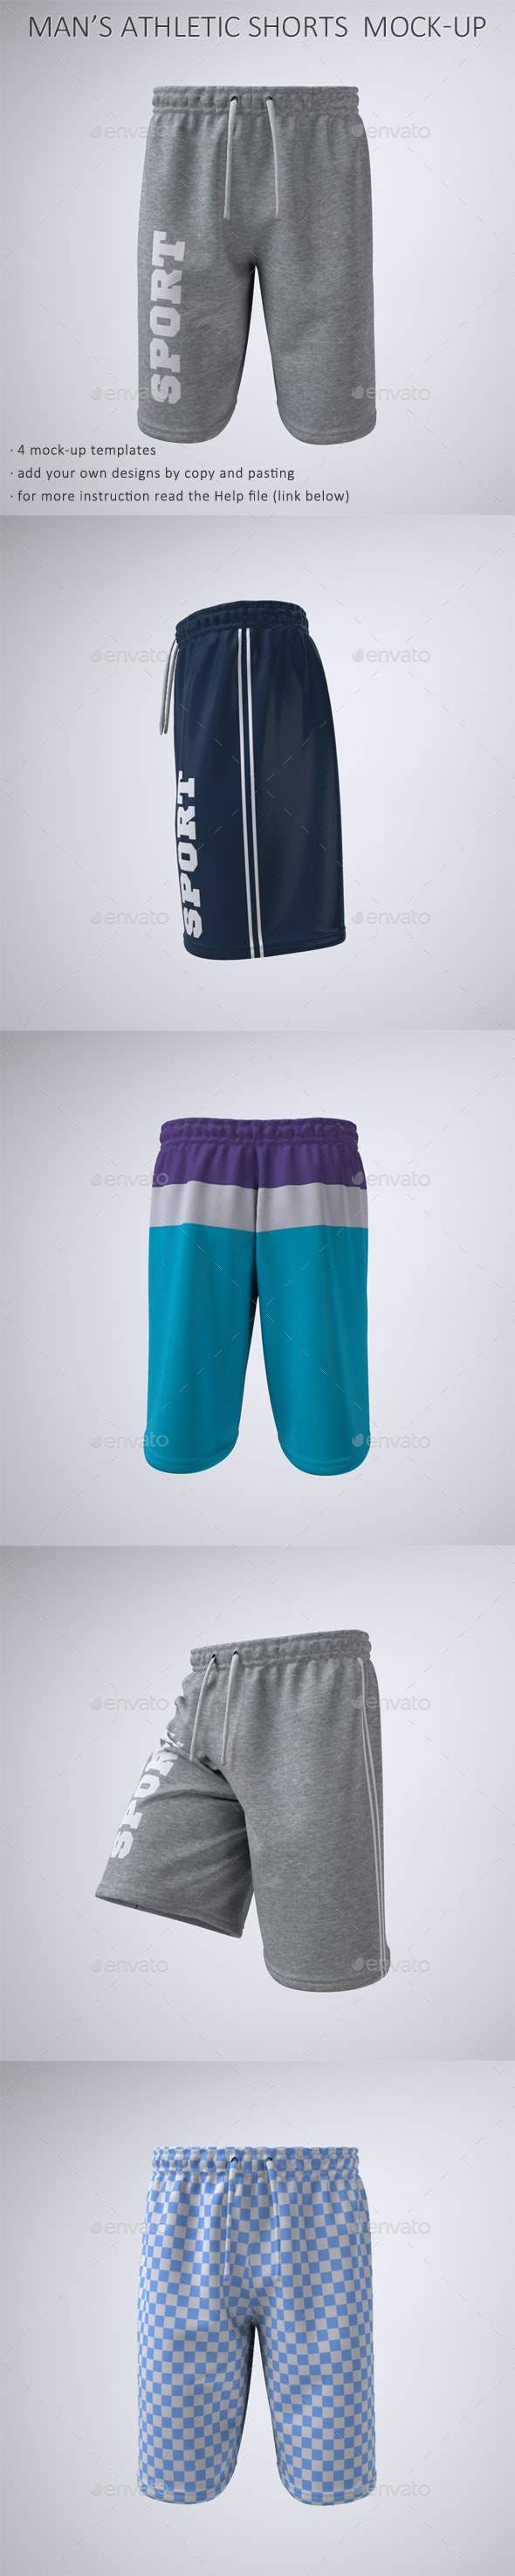 Man's Athletic Shorts, Sport or Gym Shorts Mock-Up - Apparel Product Mock-Ups